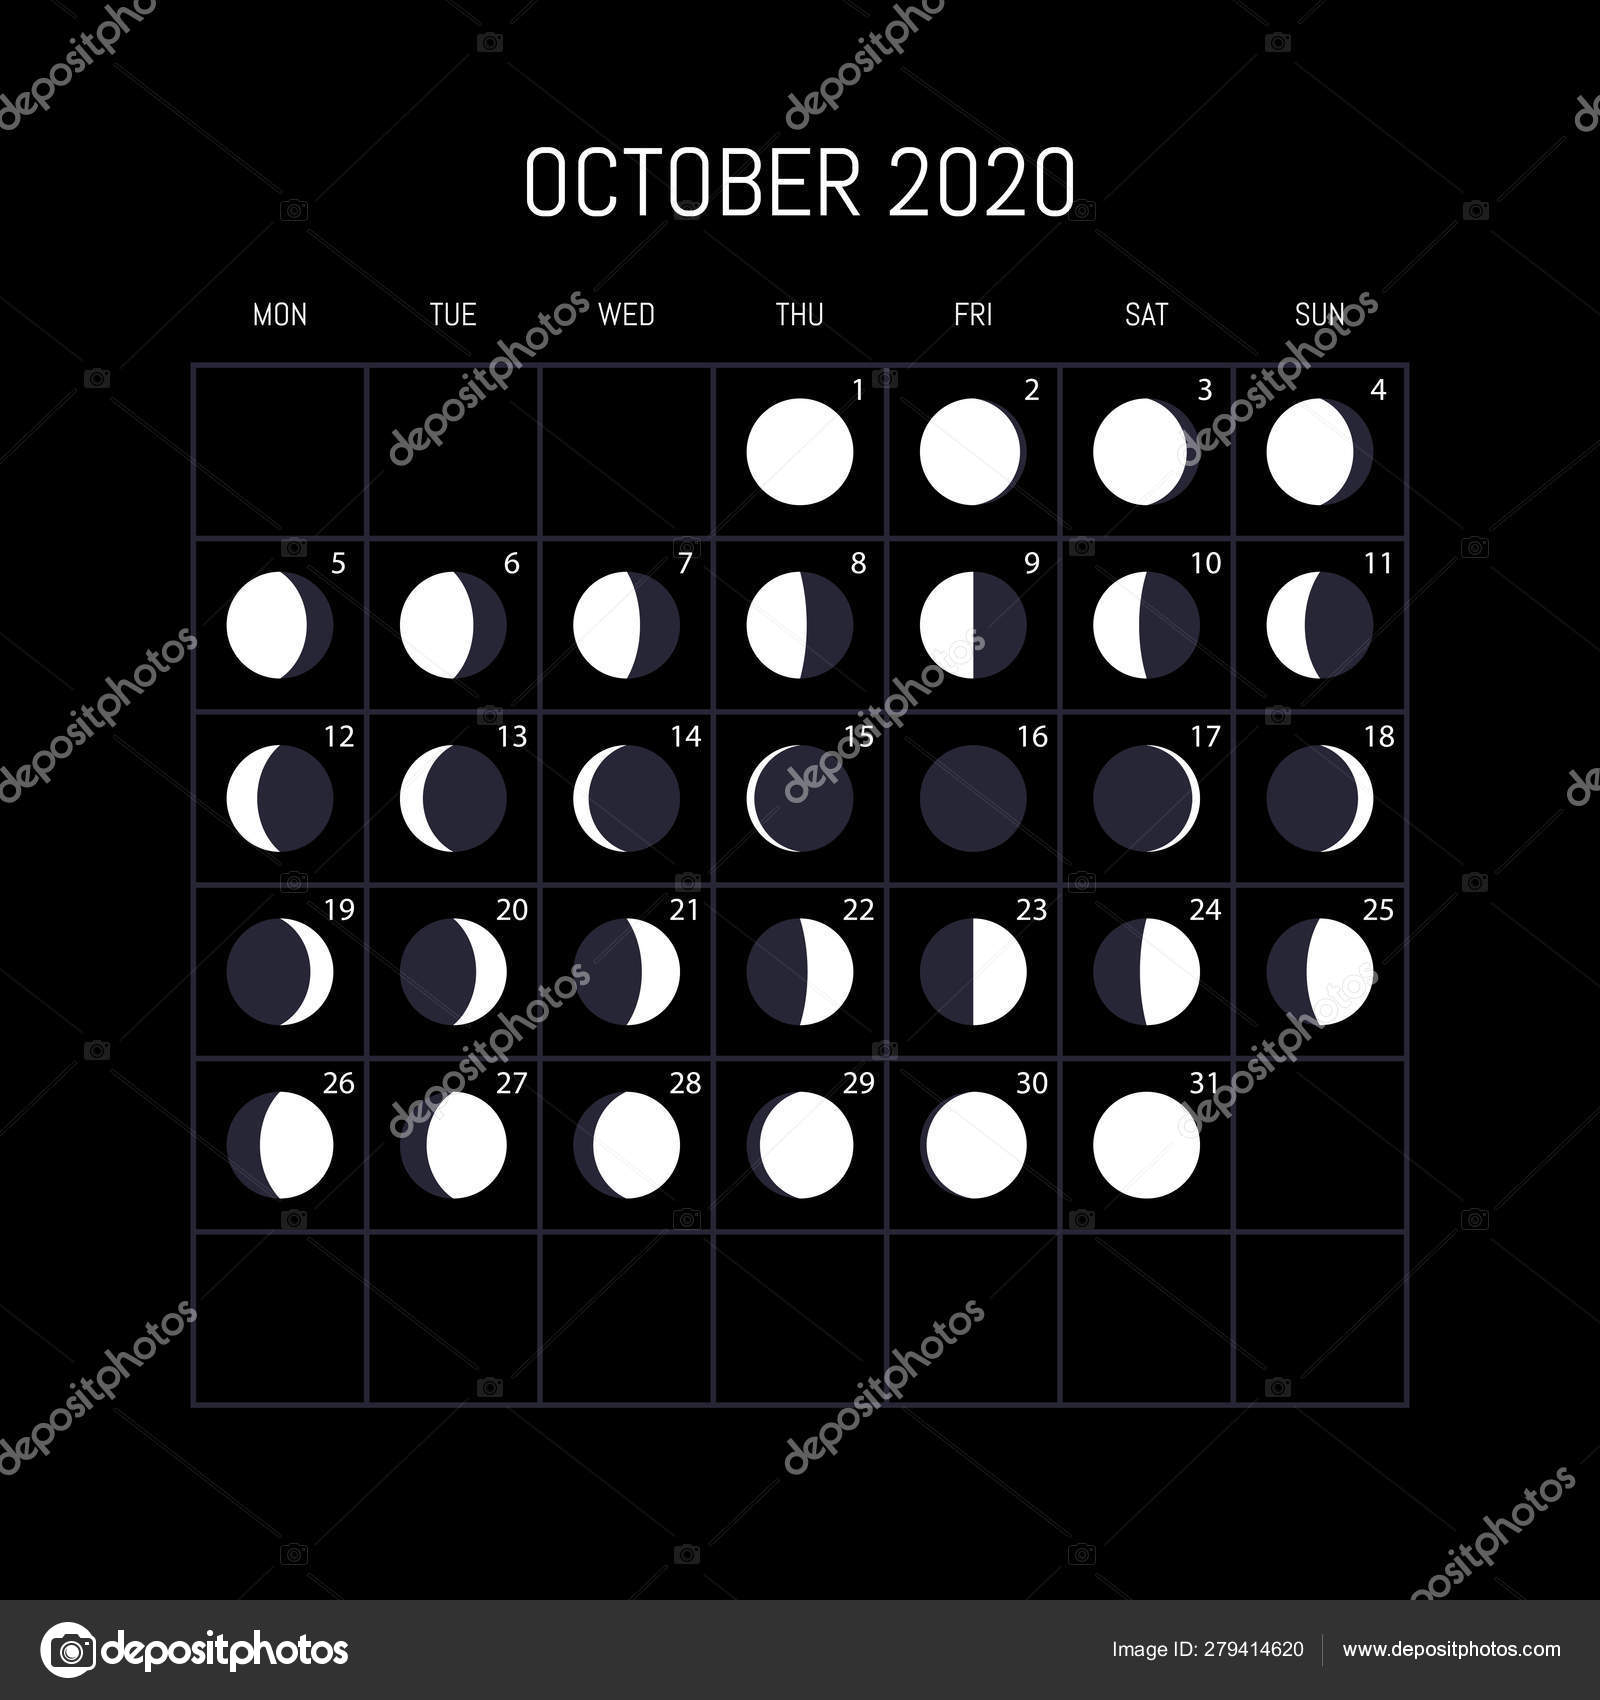 Moon Phases Calendar For 2020 Year. October. Night regarding Lunar Calendar October 2020